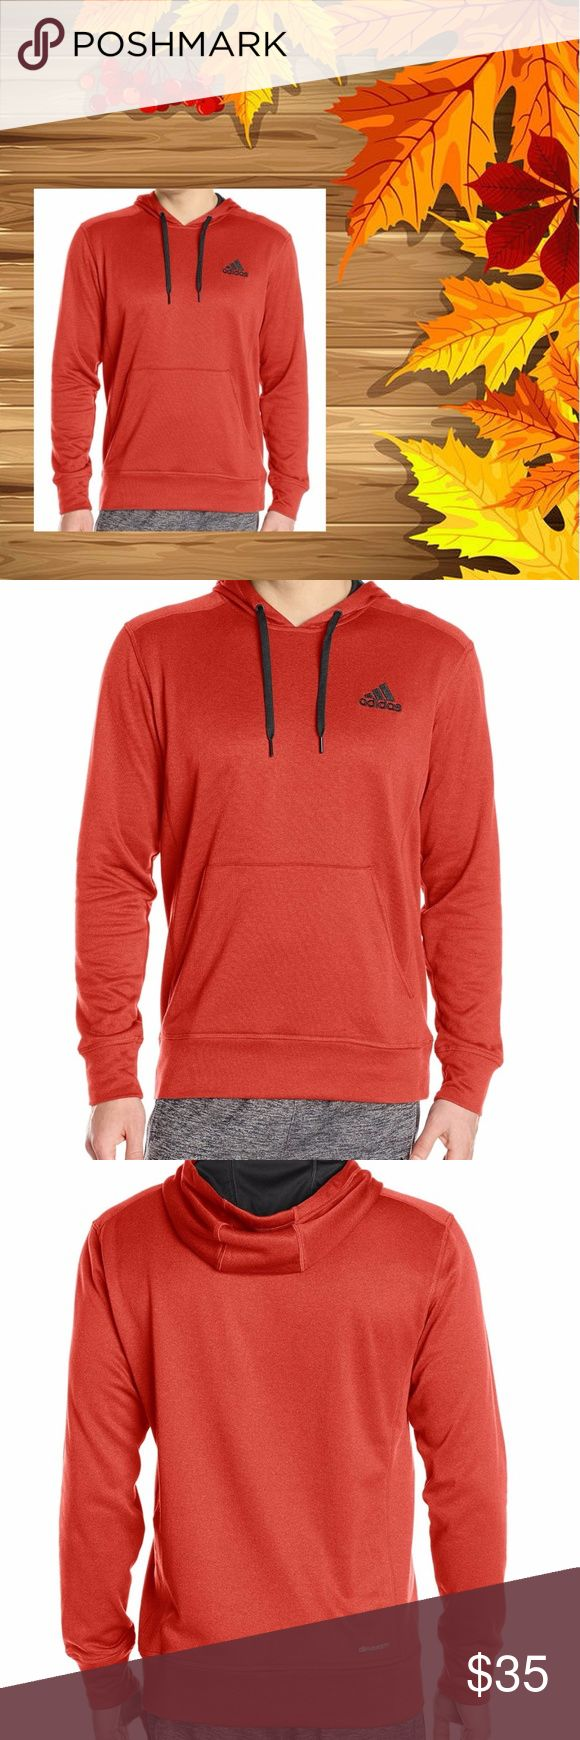 Adidas Hoodie M XL Go To Fleece Red Pullover New Adidas bright red Climawarm hoodie sweatshirt with black hood lining and ties. Long sleeves. NEW with Tags!  >>>Available in Large or Extra Large<<<  13x15 161120-2000-9 adidas Shirts Sweatshirts & Hoodies